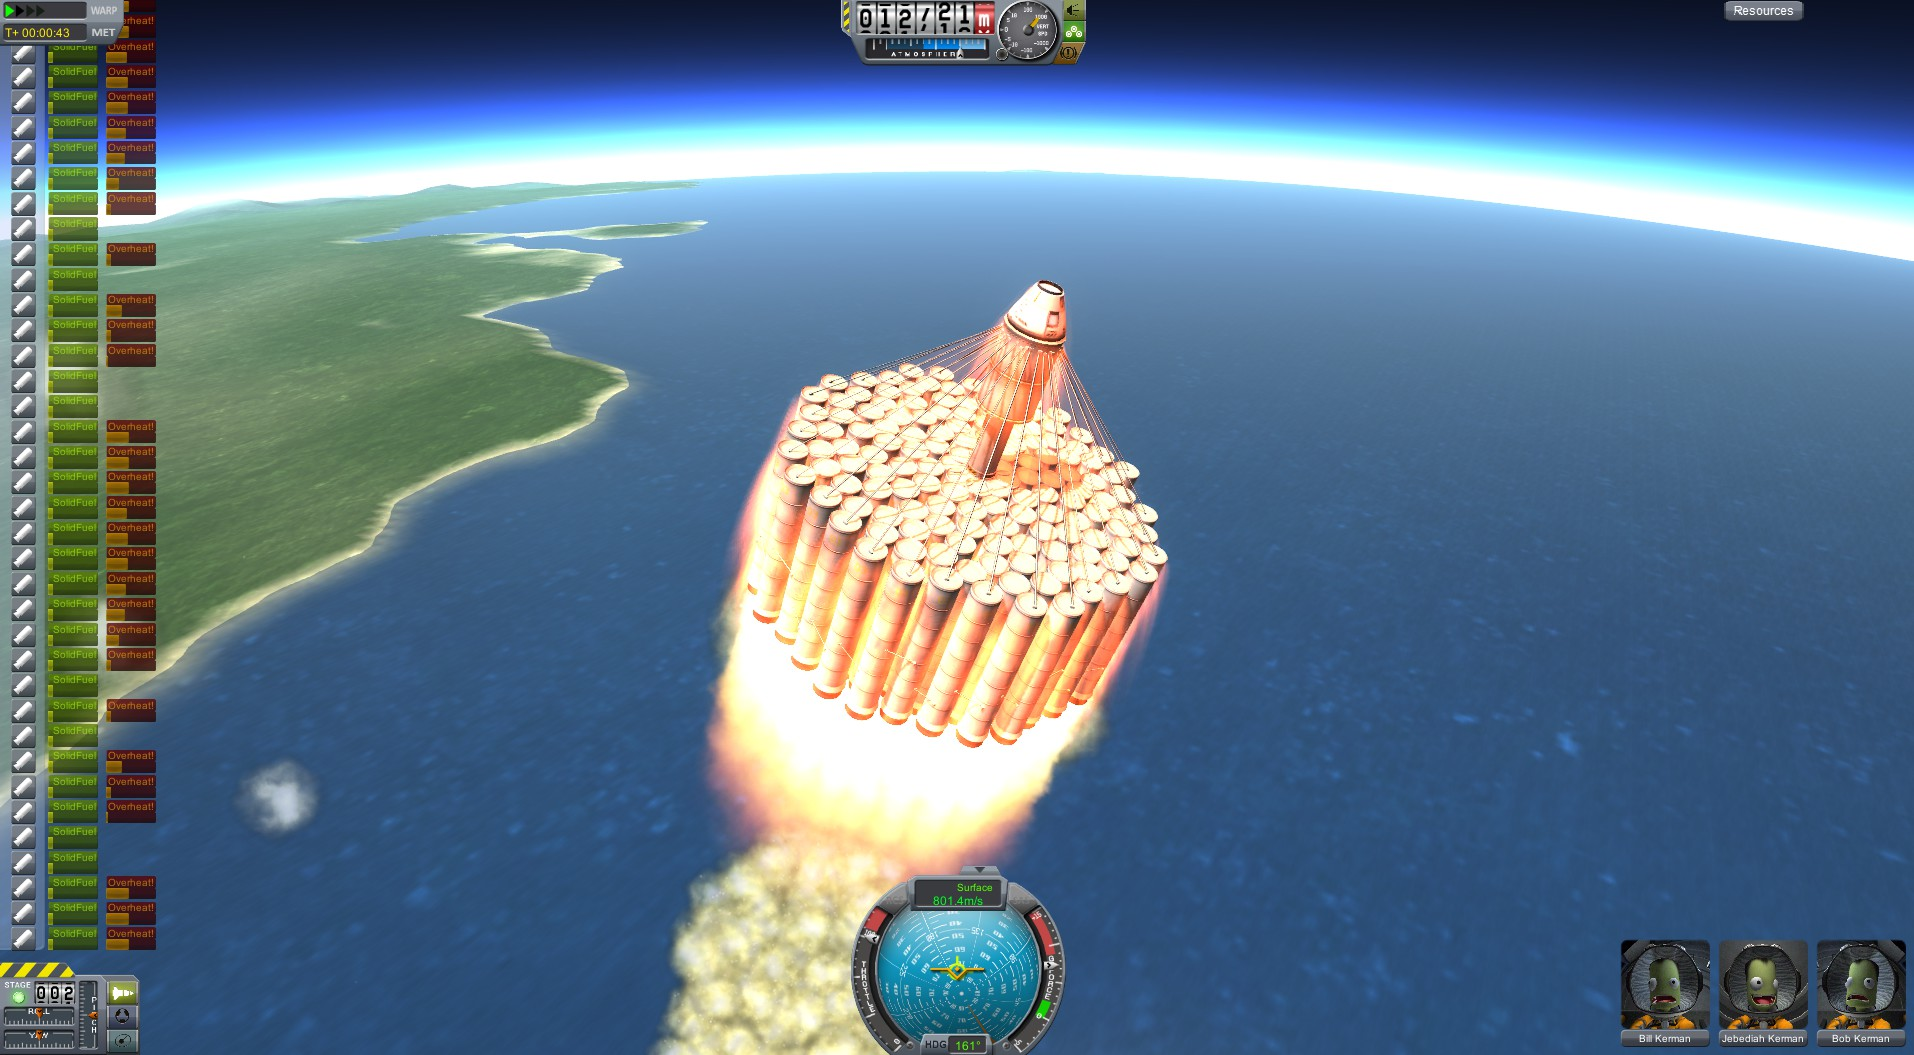 simple rocket kerbal space program - photo #27